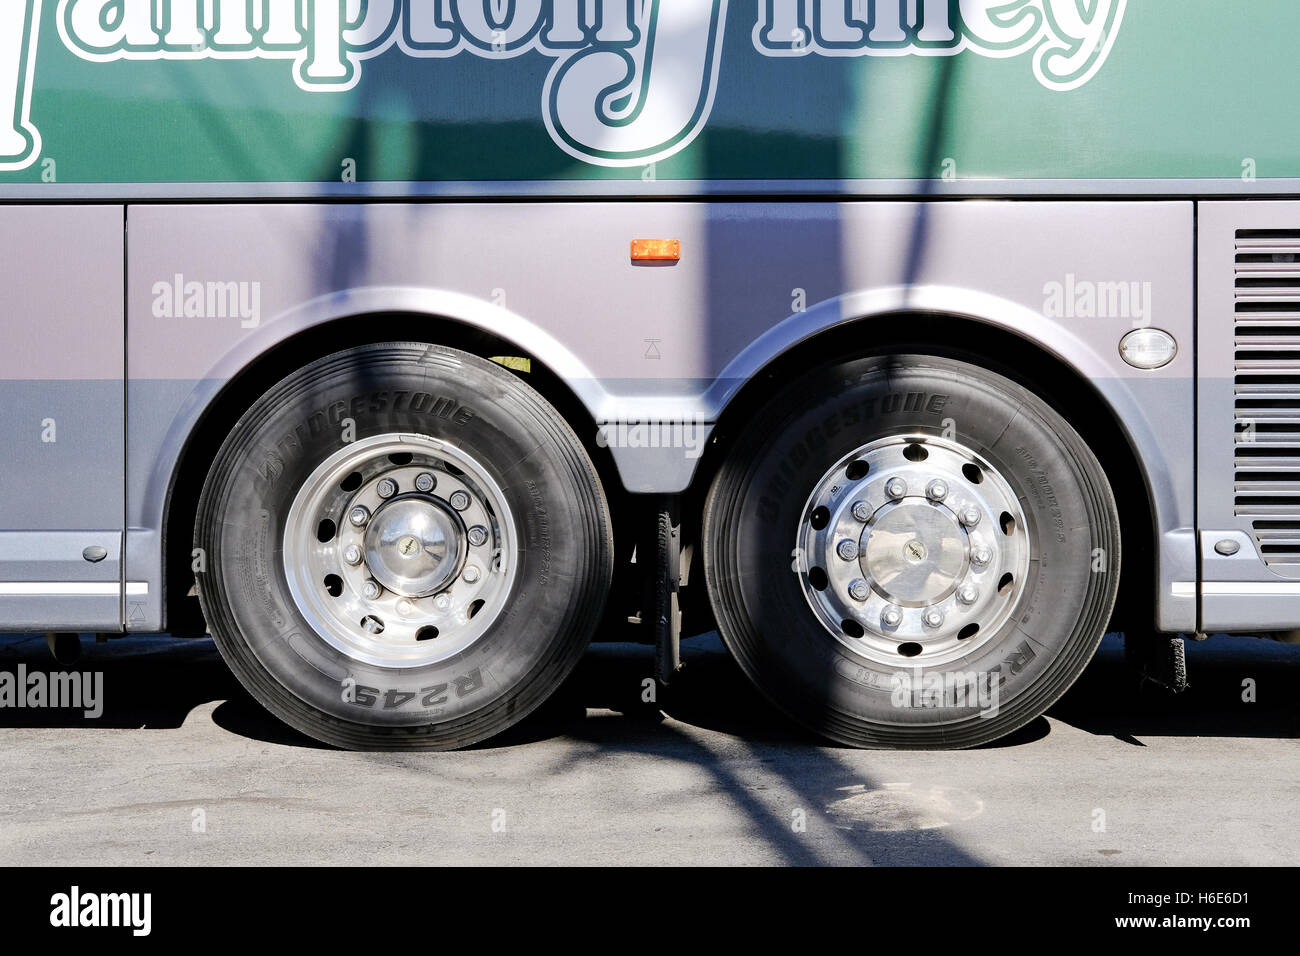 Twin axial view of a passenger coach seen in a parked position with livery of the tour operator. - Stock Image